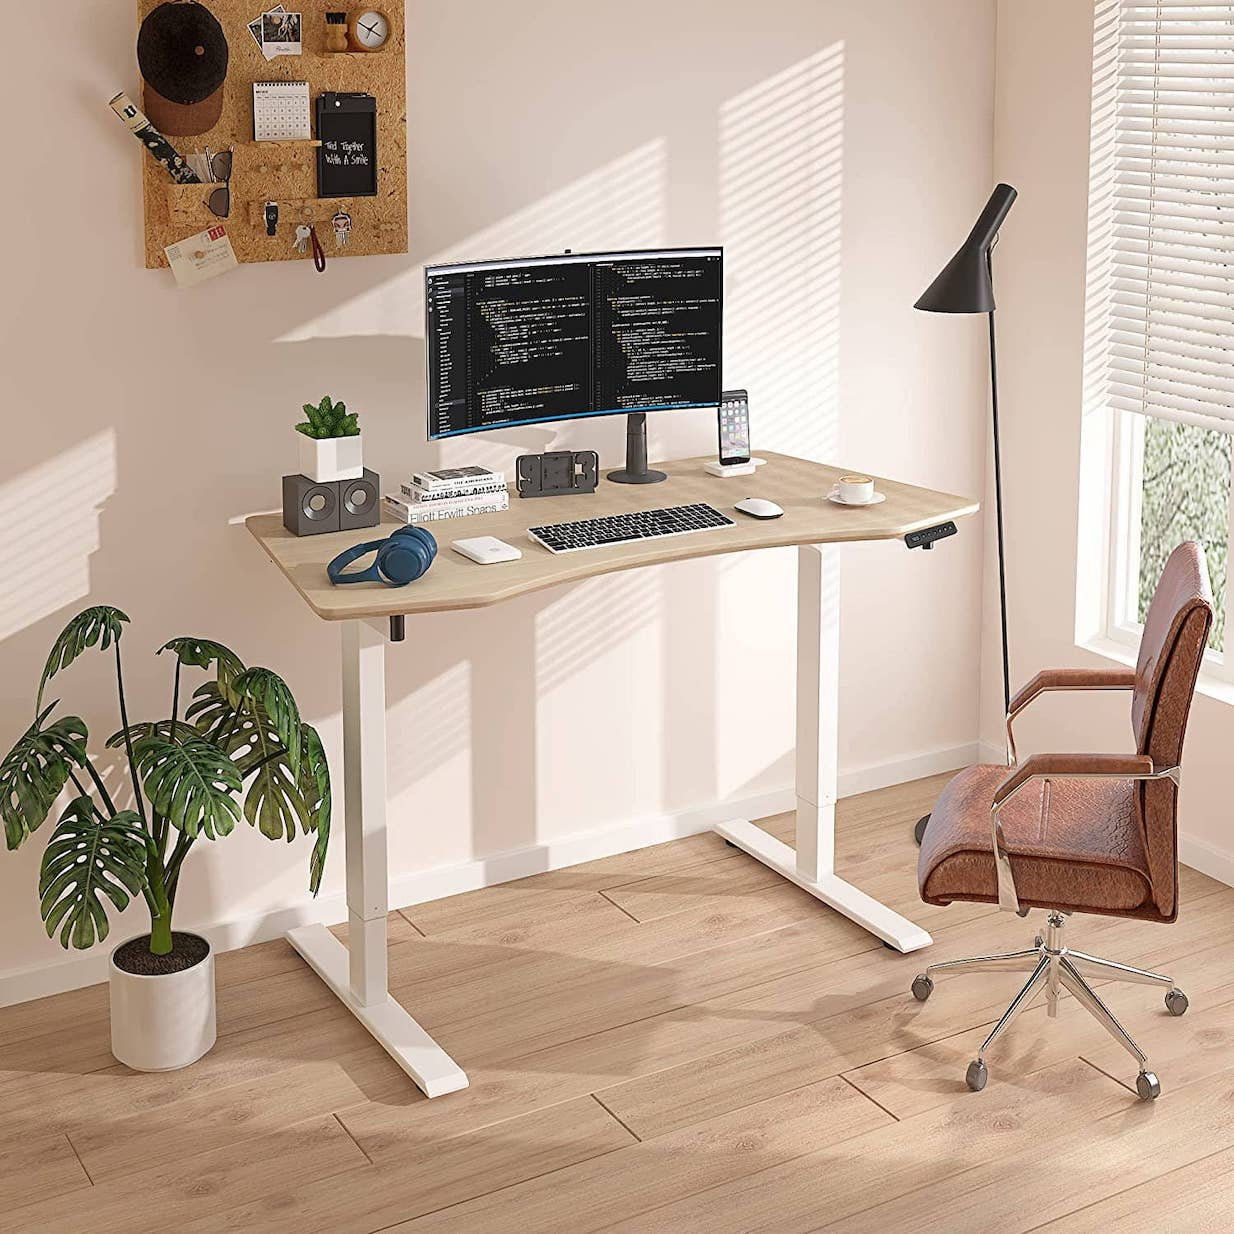 MAIDeSITe stand up desk